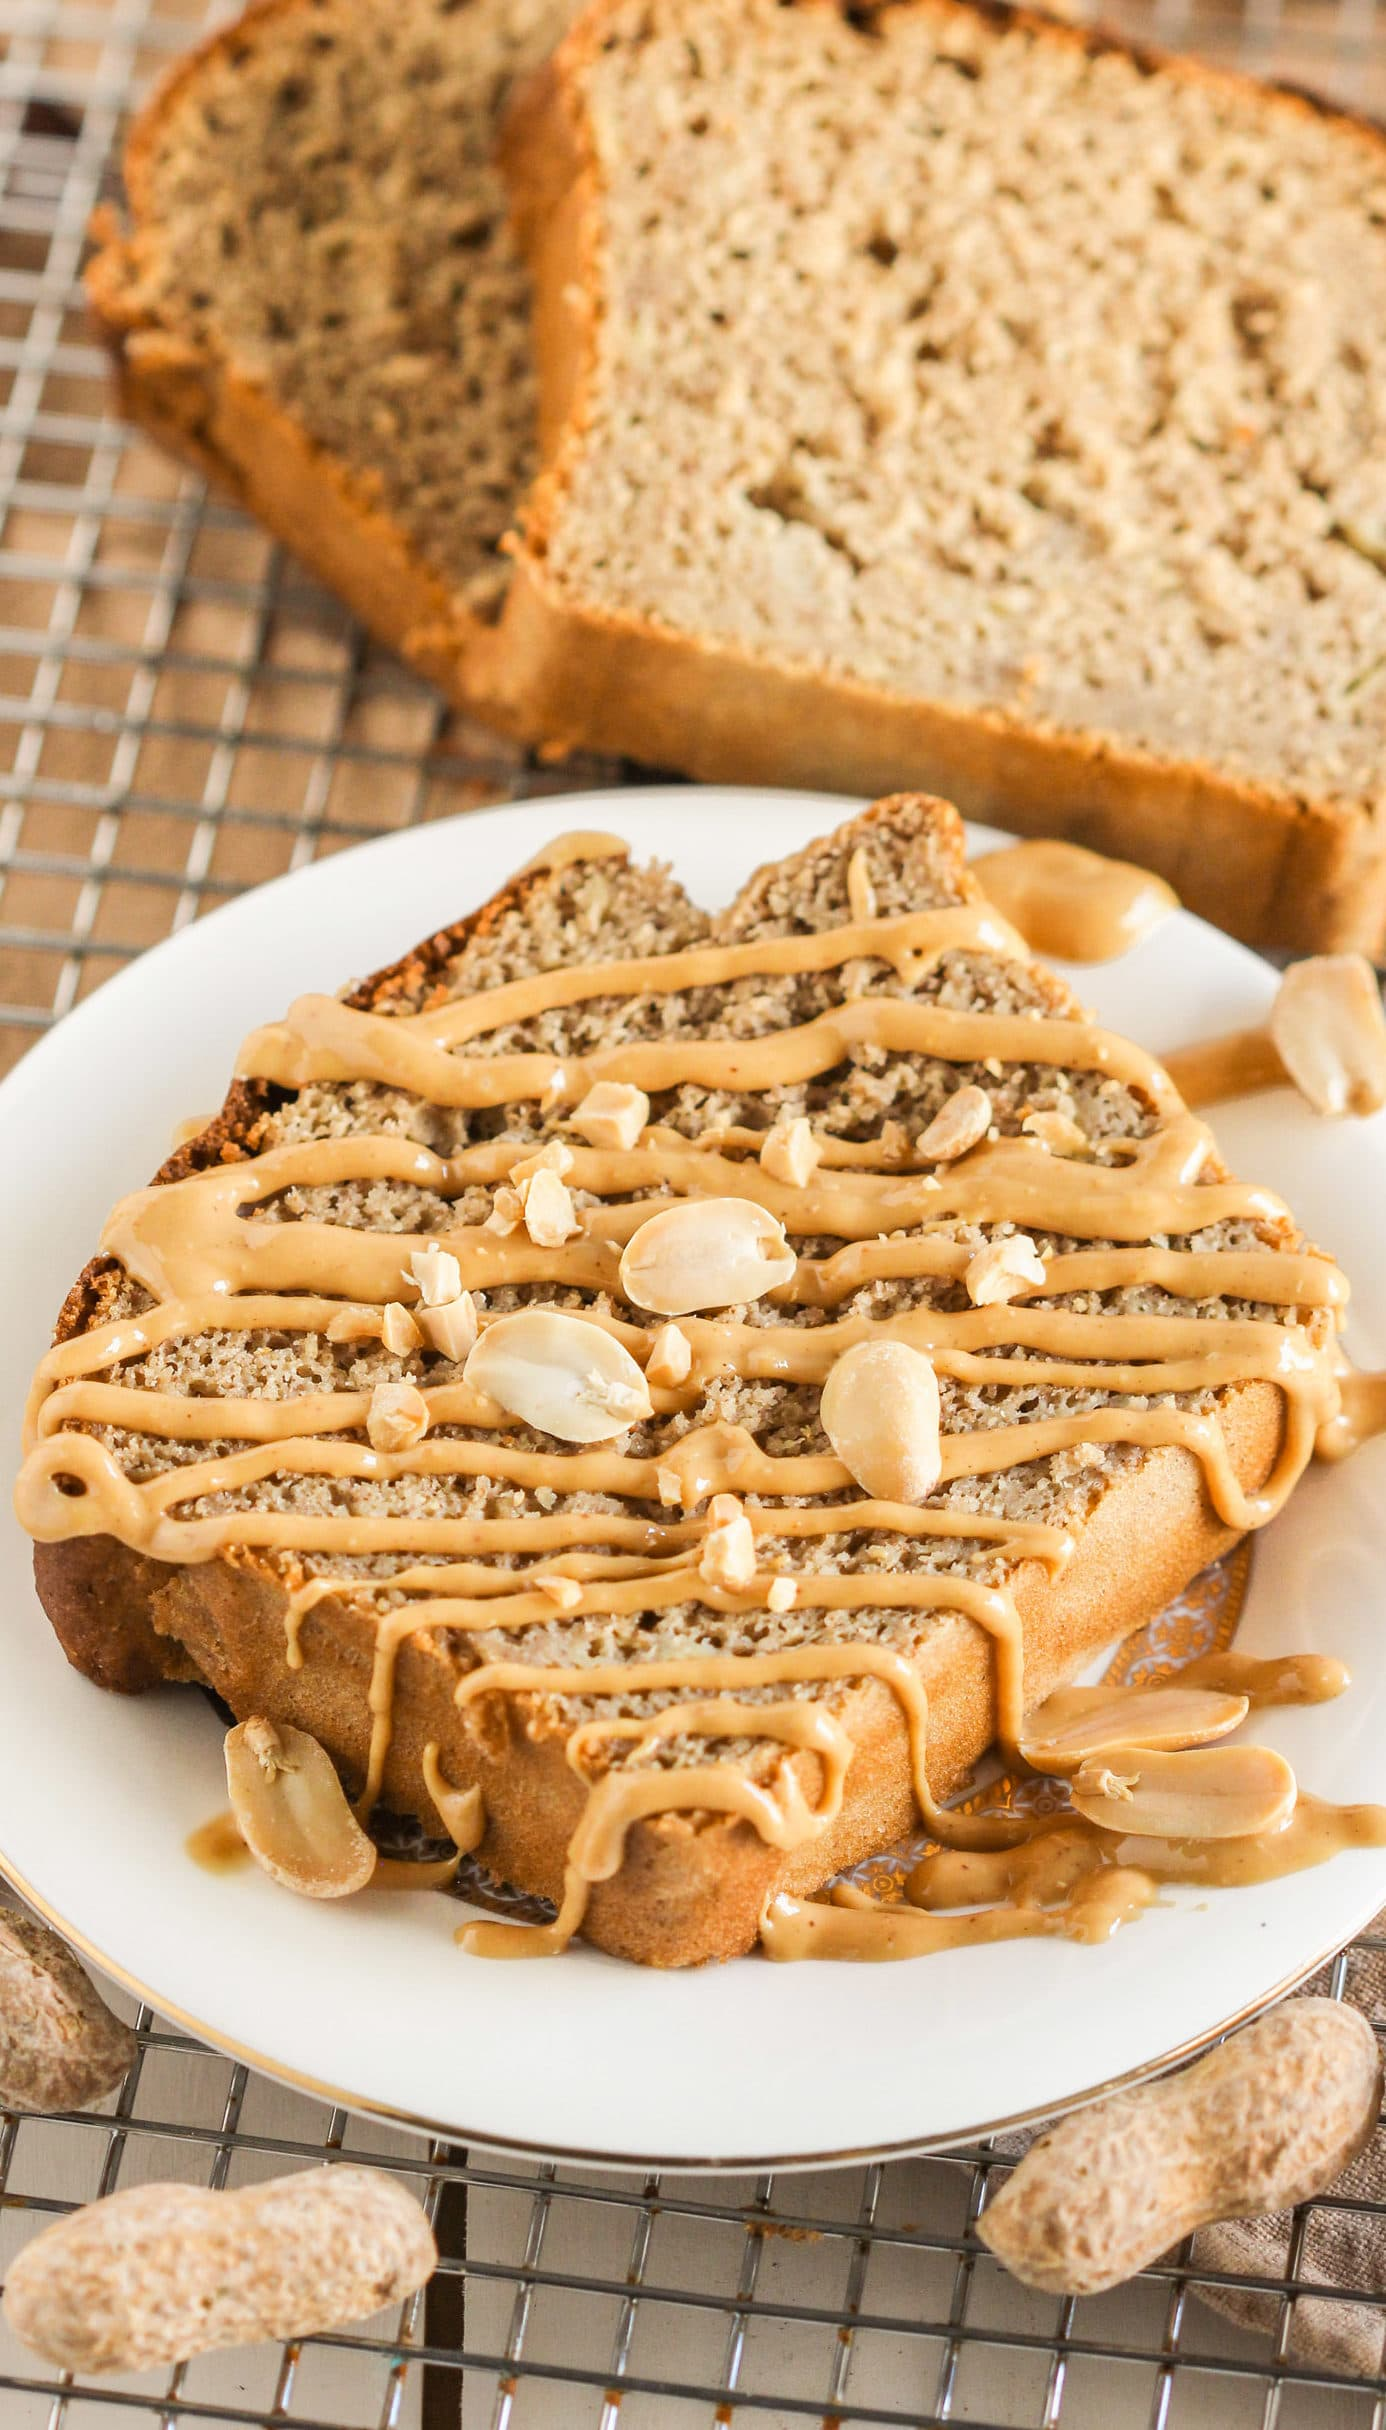 This is the BEST Healthy Peanut Butter Banana Bread EVER! It's so rich, moist, and flavorful, one bite and you'll wonder how there's no butter and no sugar added. Yes, this bread is refined sugar free, gluten free, AND high protein! Healthy Dessert Recipes with low calorie, low fat, low carb, gluten free, dairy free, vegan, and raw options at the Desserts With Benefits Blog (www.DessertsWithBenefits.com)